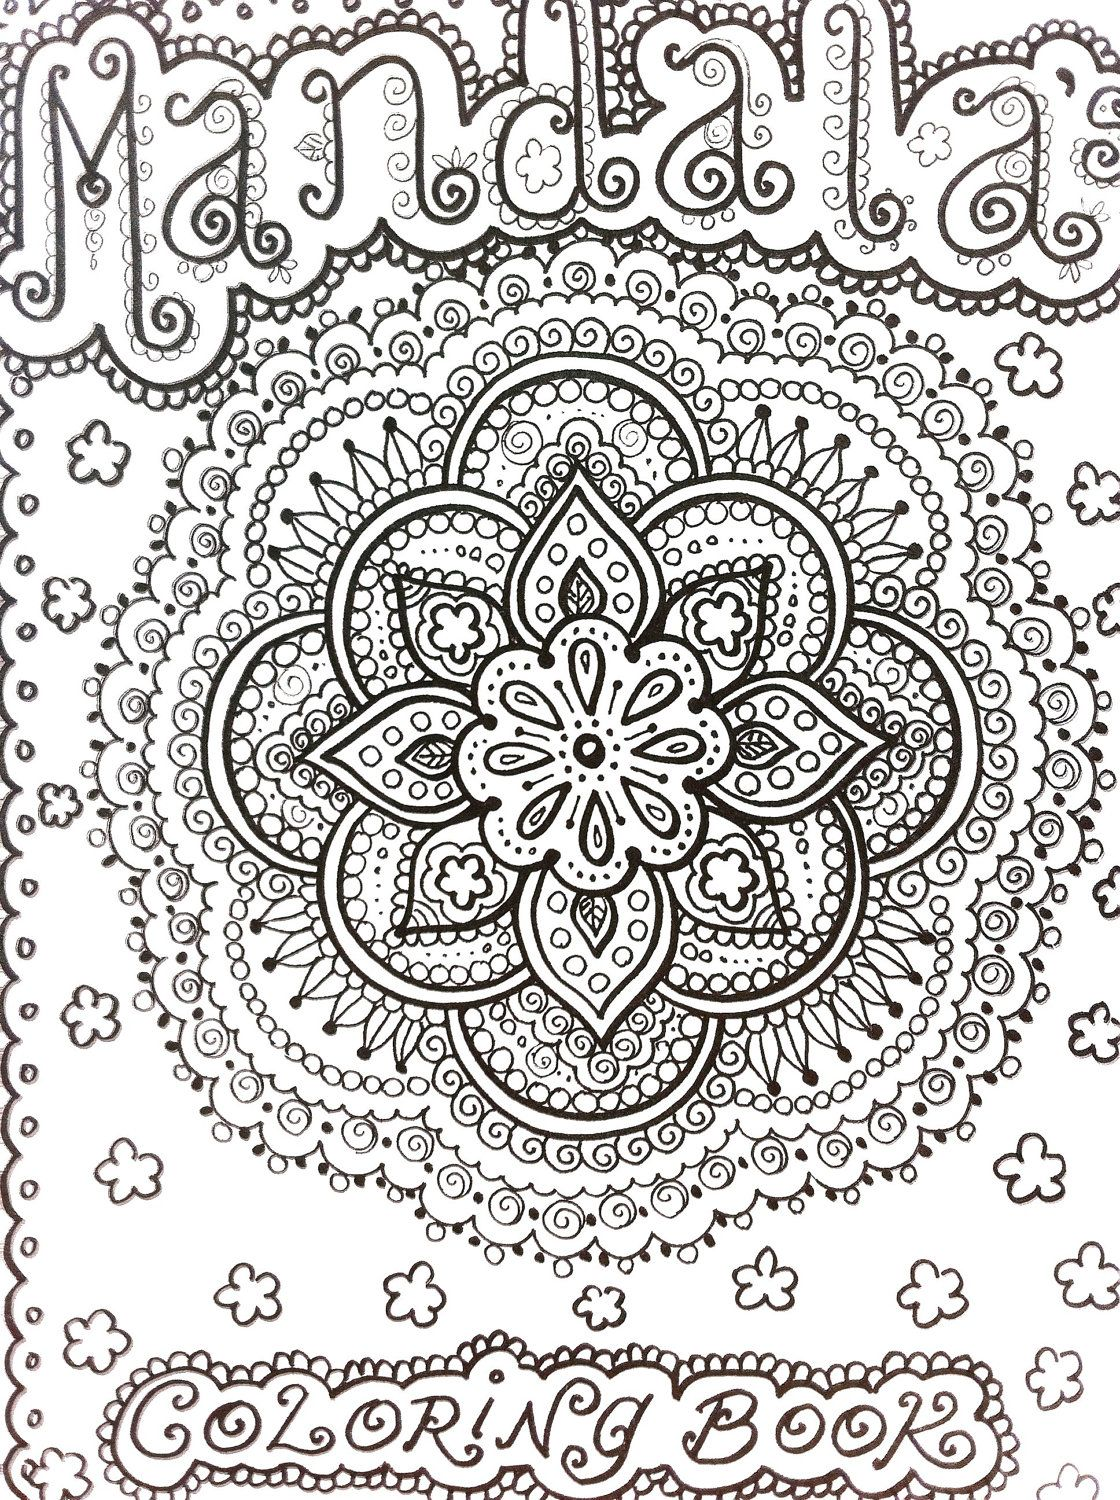 Coloring pages relaxing - Mandala Abstract Doodle Zentangle Coloring Pages Colouring Adult Detailed